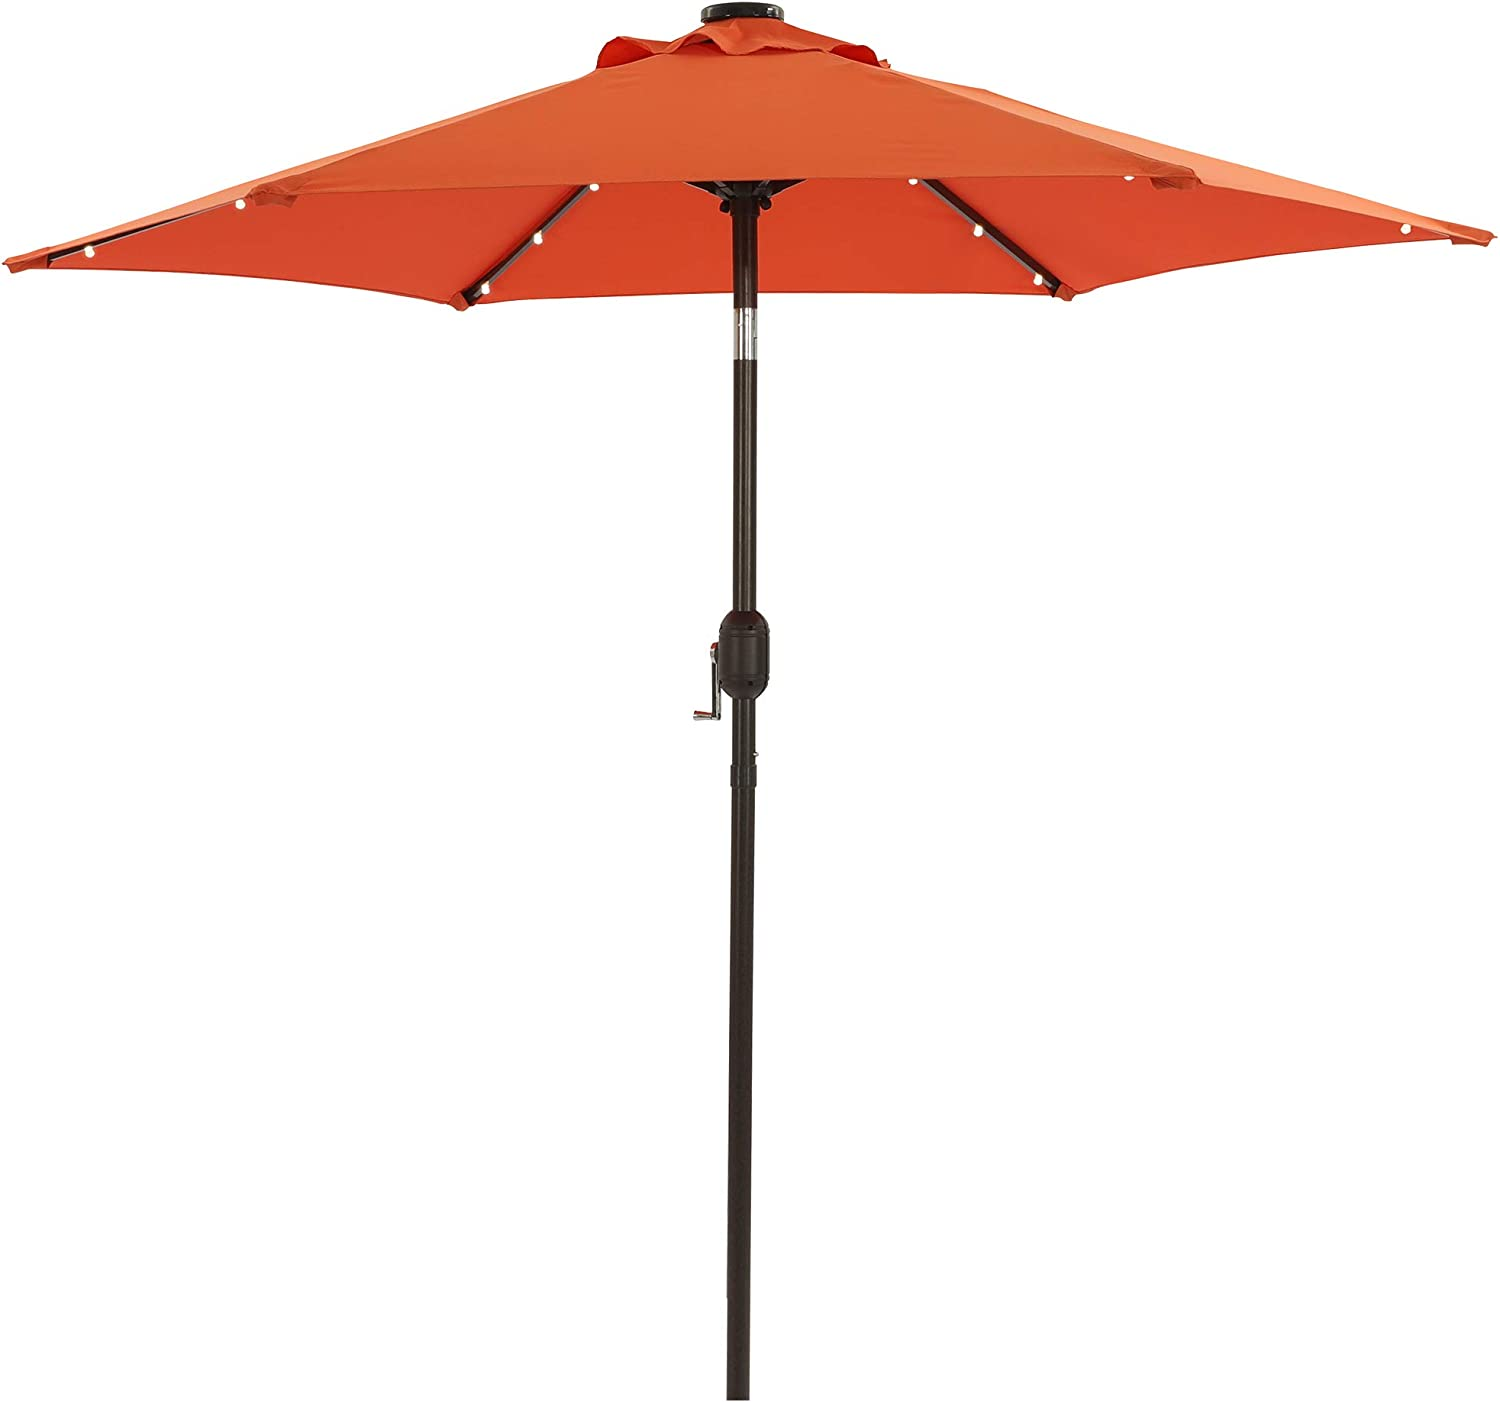 Aok Garden 7.5 ft Solar Patio Umbrella with 18 LED Lights Outdoor Table Market Umbrella with Push Button Tilt and Crank 6 Sturdy Aluminum Ribs for Deck, Lawn, Pool& Backyard, Orange